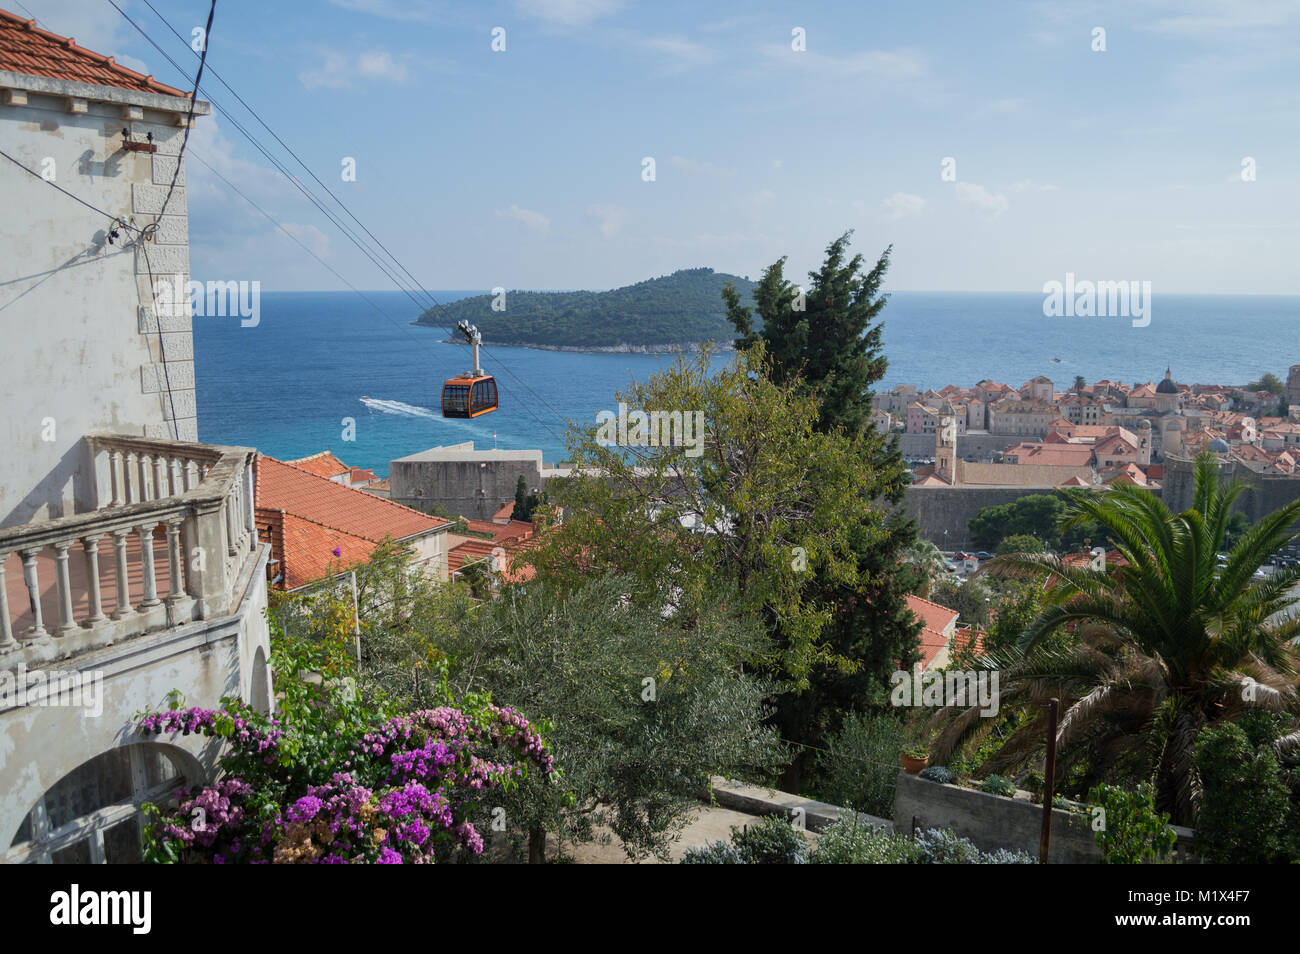 View onto Lokrum Island and Old Town of Dubrovnik with Cable Car, Croatia - Stock Image